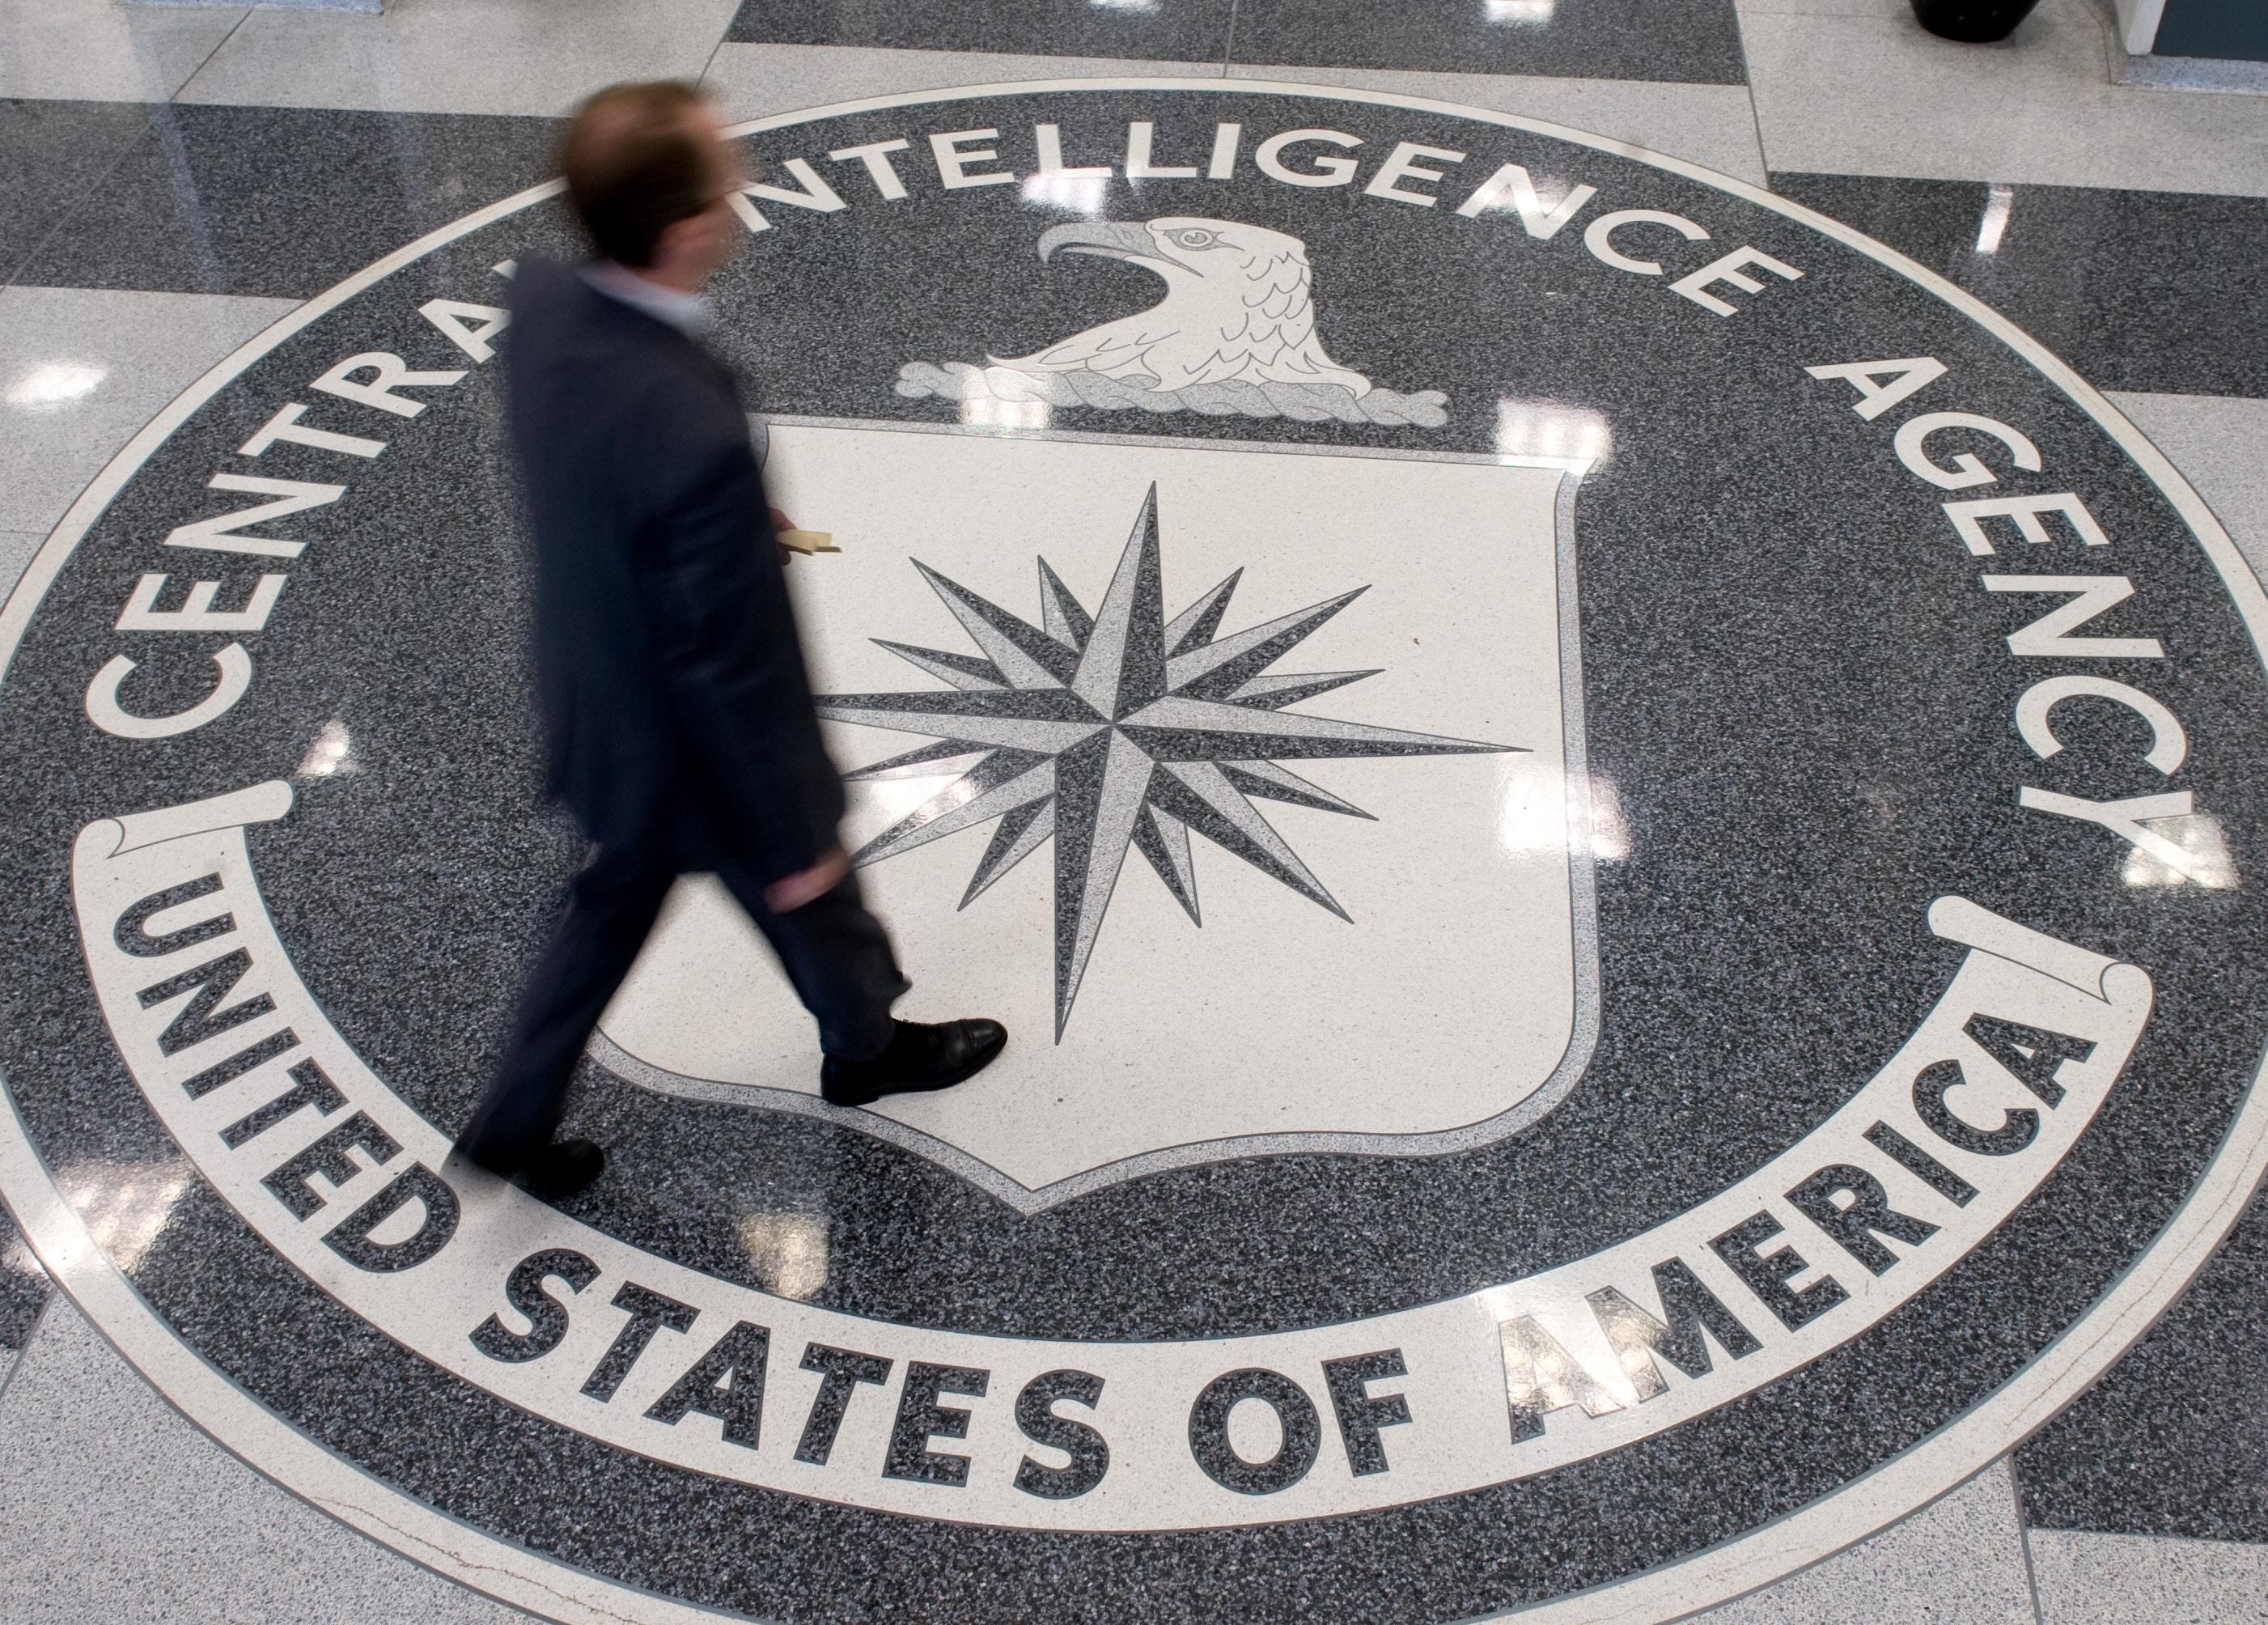 Leaked CIA document reveals setbacks of targeted killings